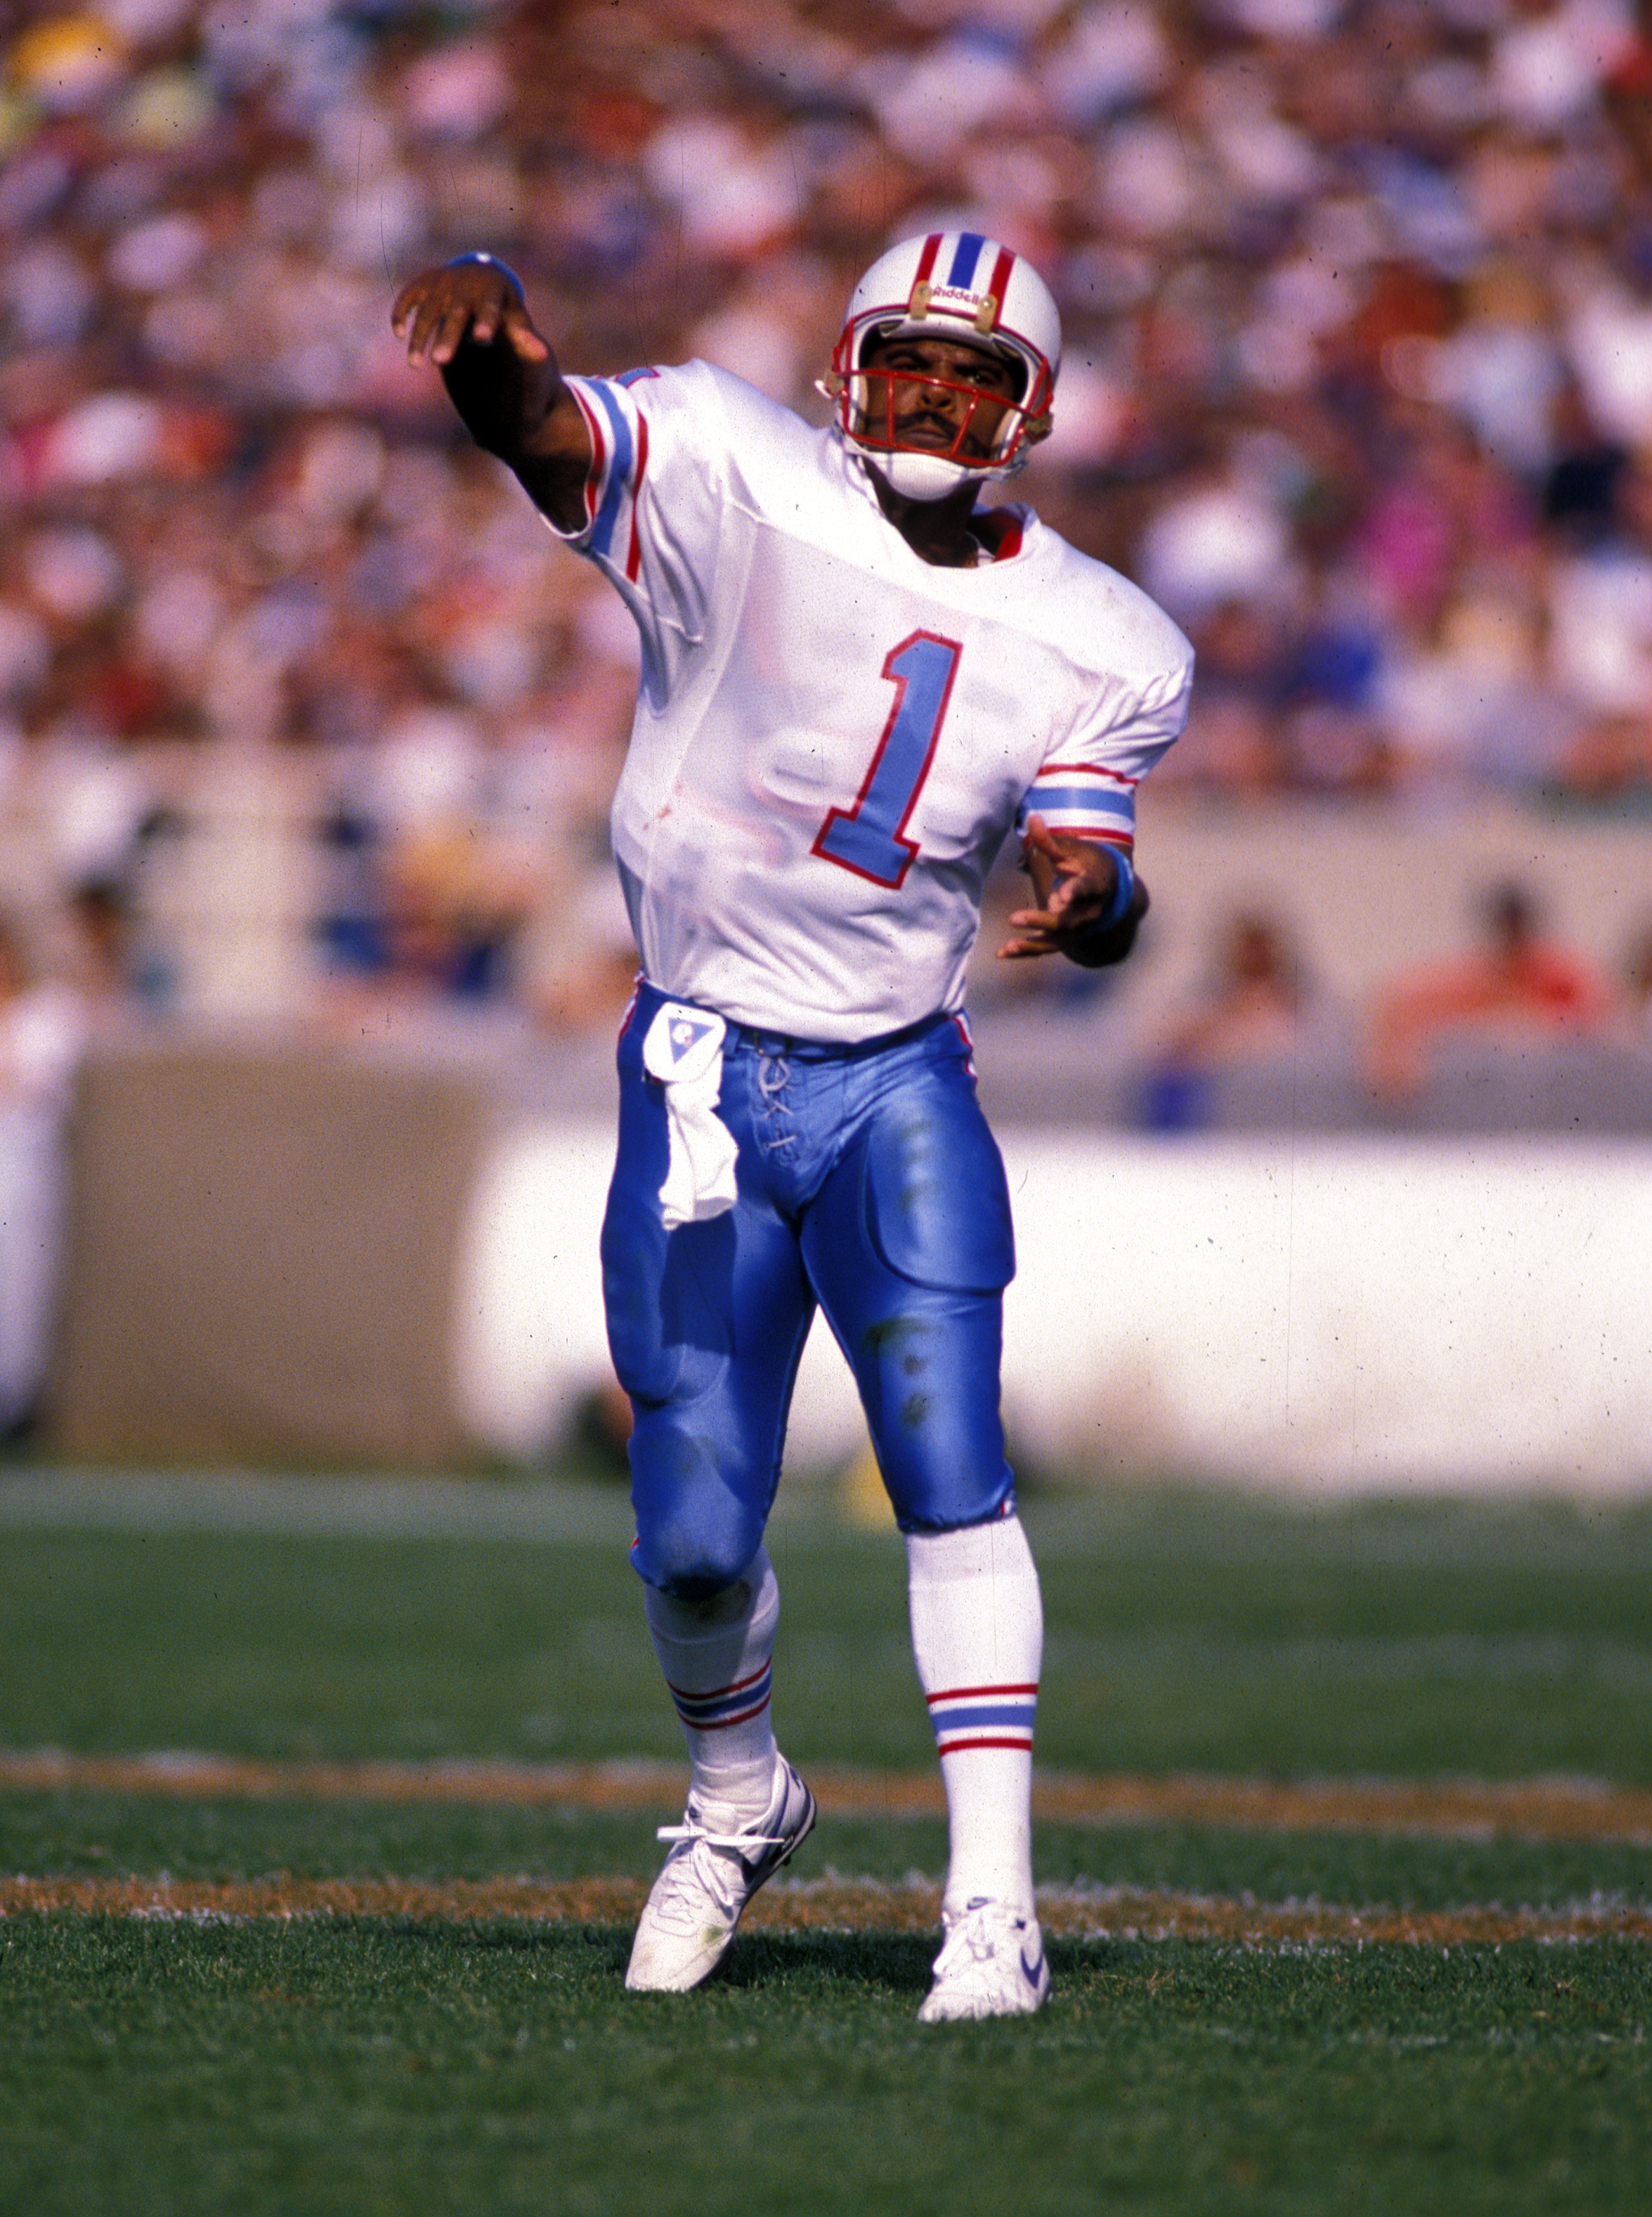 promo code 248fa a66c5 For Hall-of-Fame QB Warren Moon, philanthropy is his priority